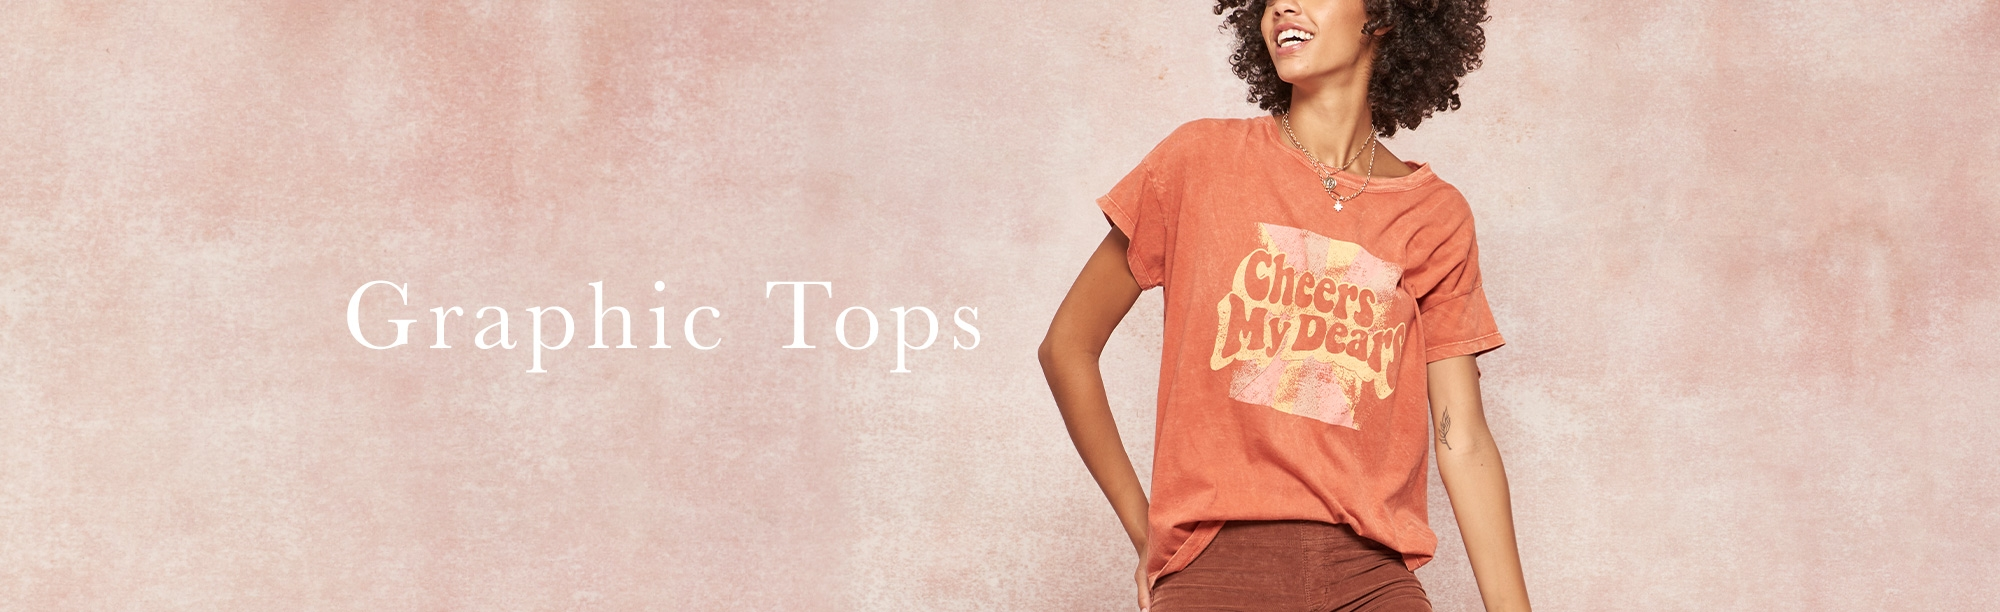 Graphic Tops